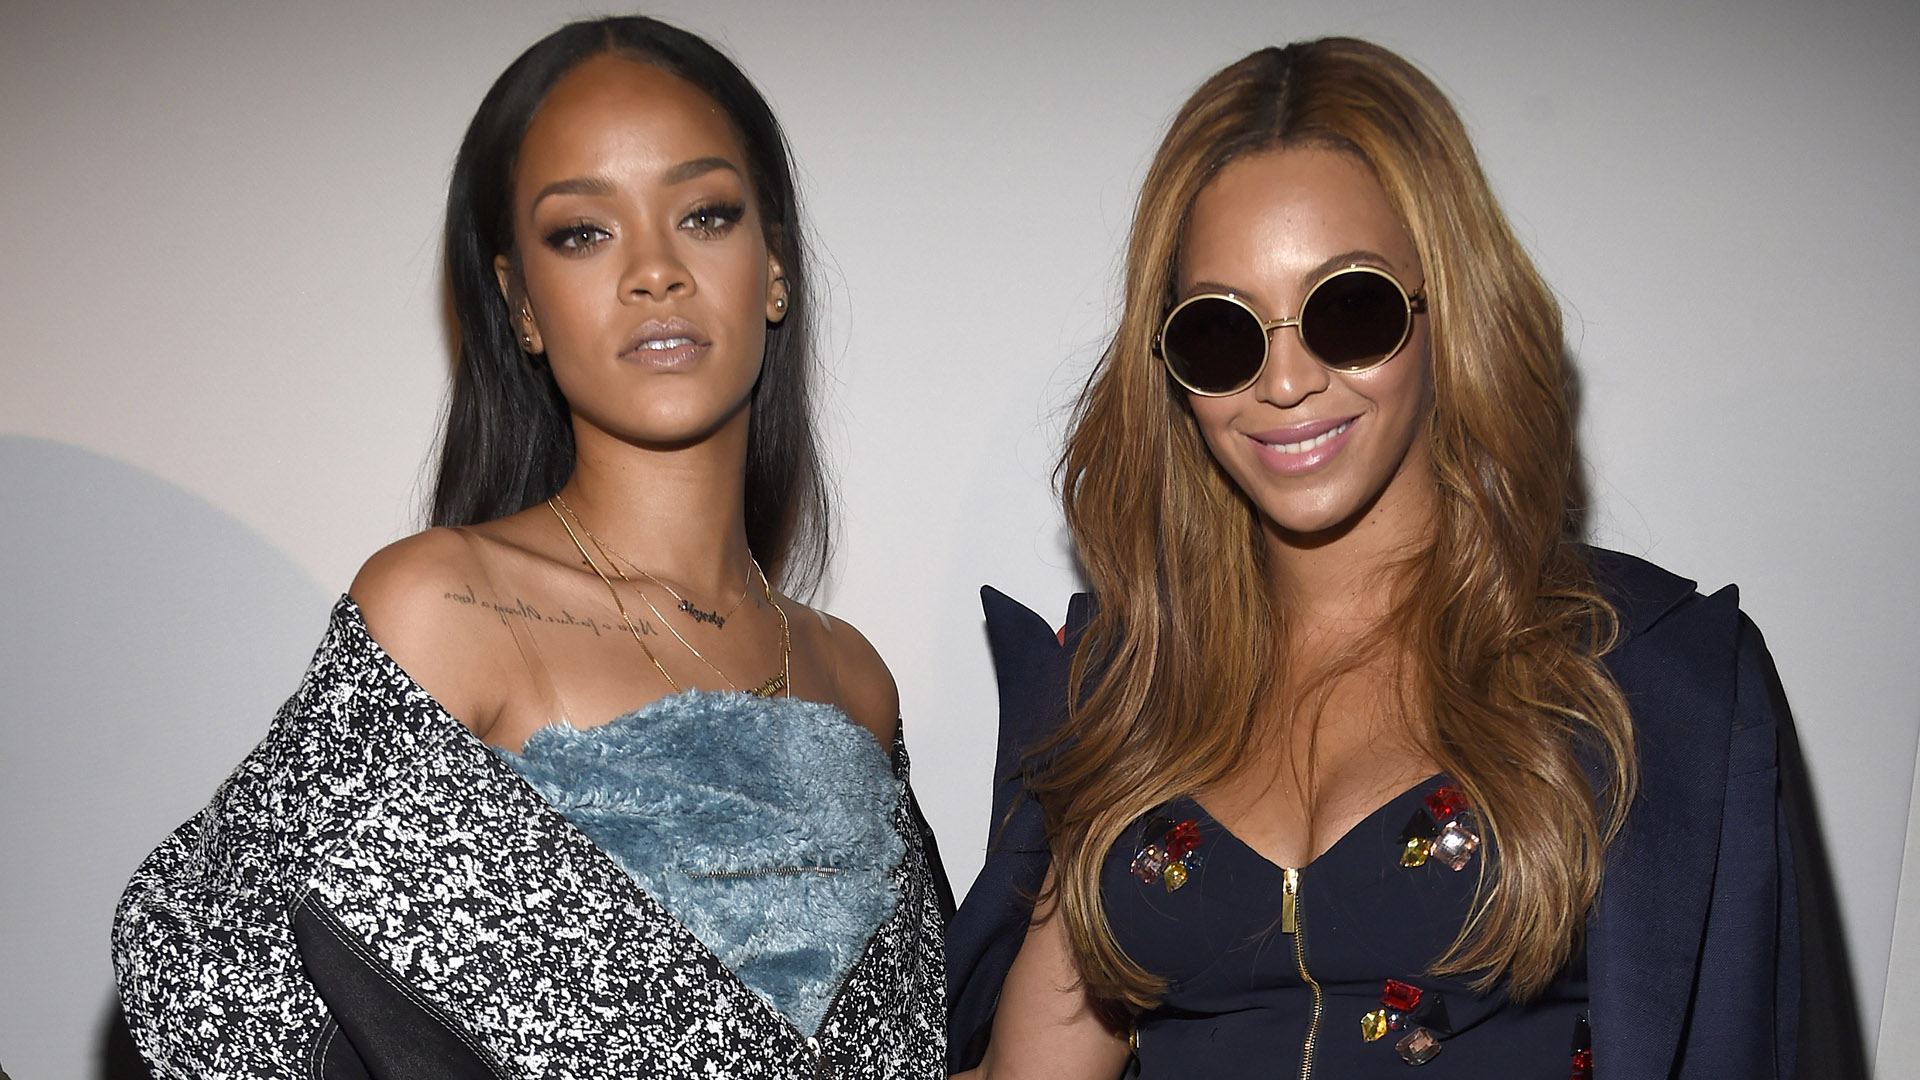 Beyoncé Just Wore the Exact Same Boots as Kendall Jenner and Rihanna